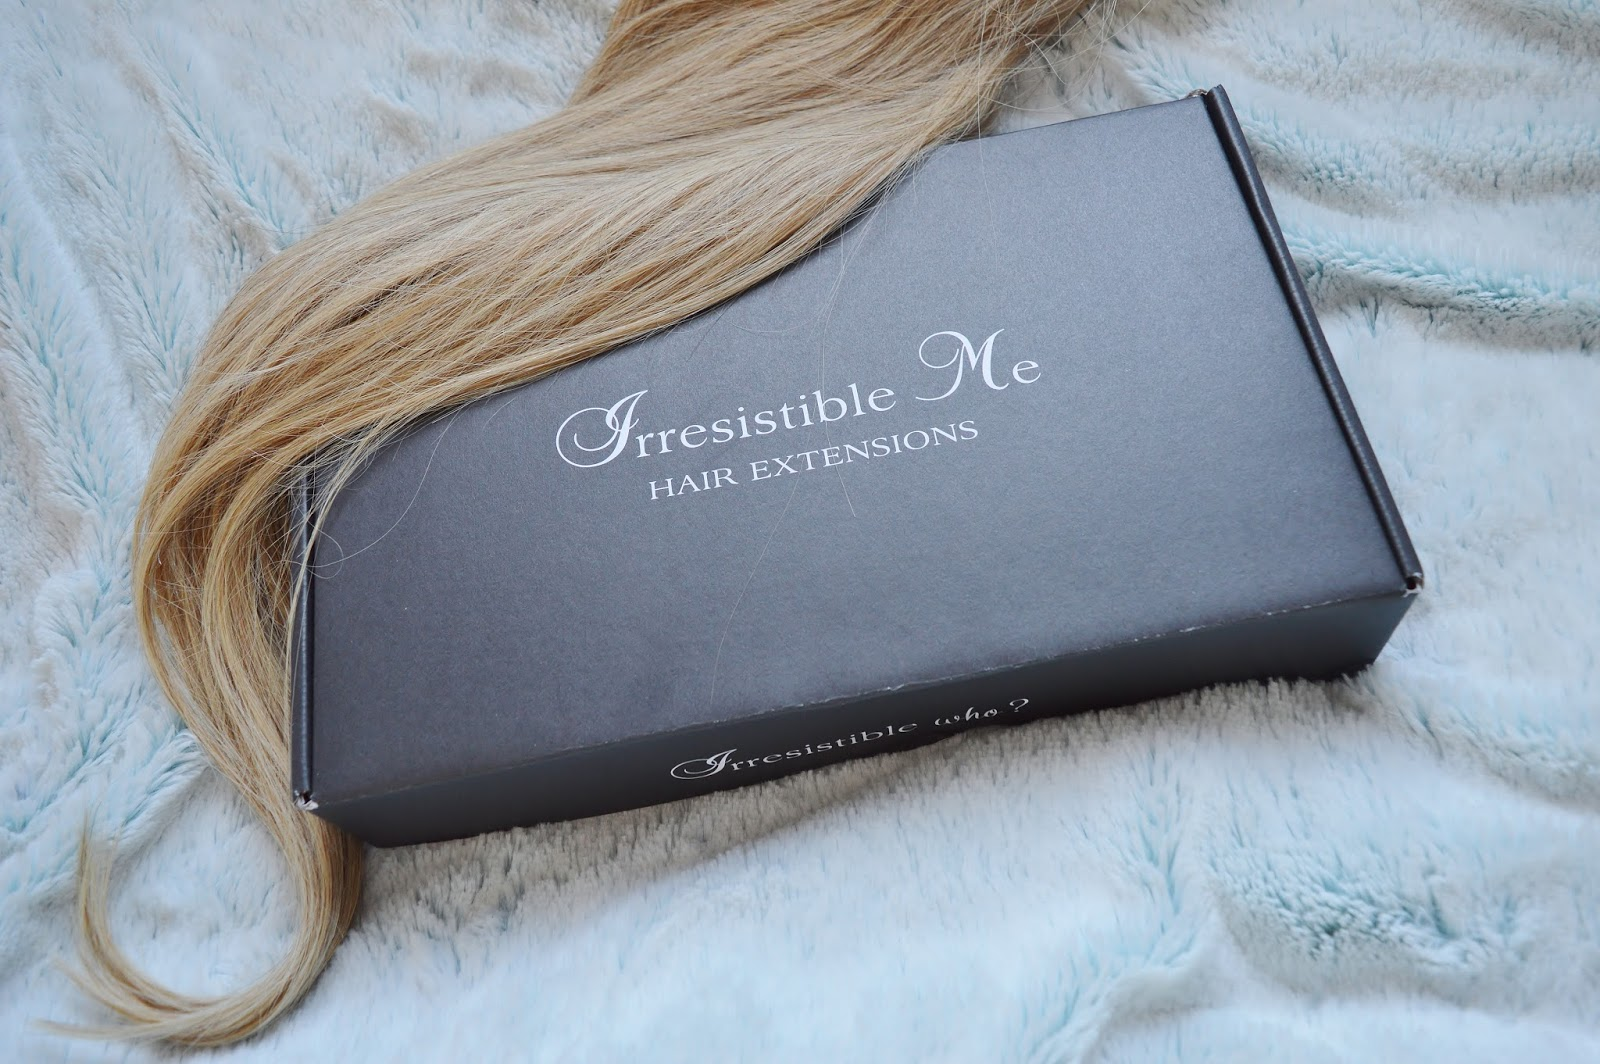 Irresistible Me Hair Extenstions